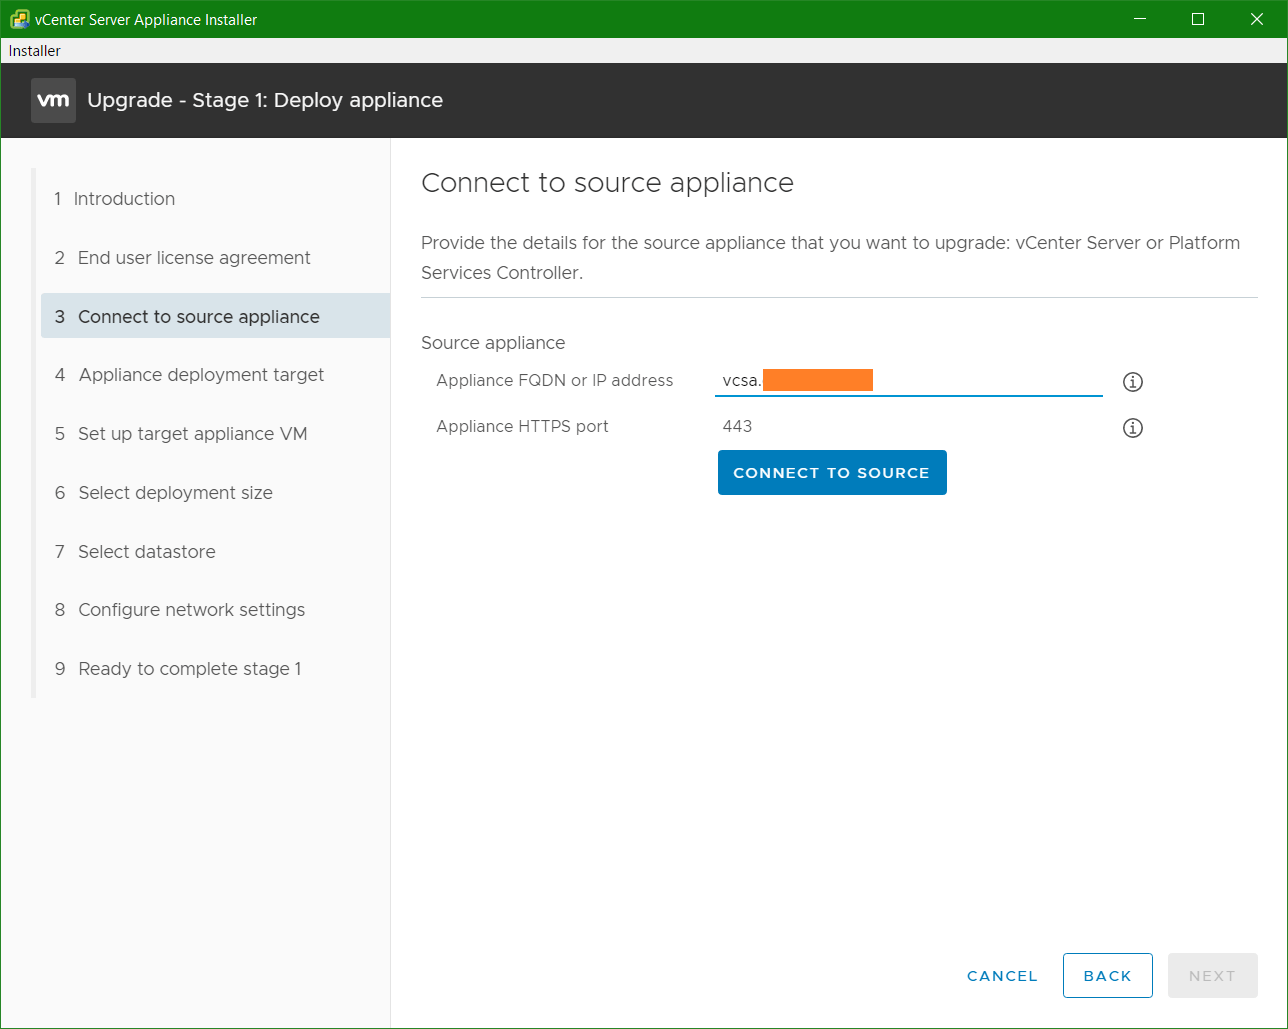 domalab.com VCSA upgrade stage 1 connect to appliance